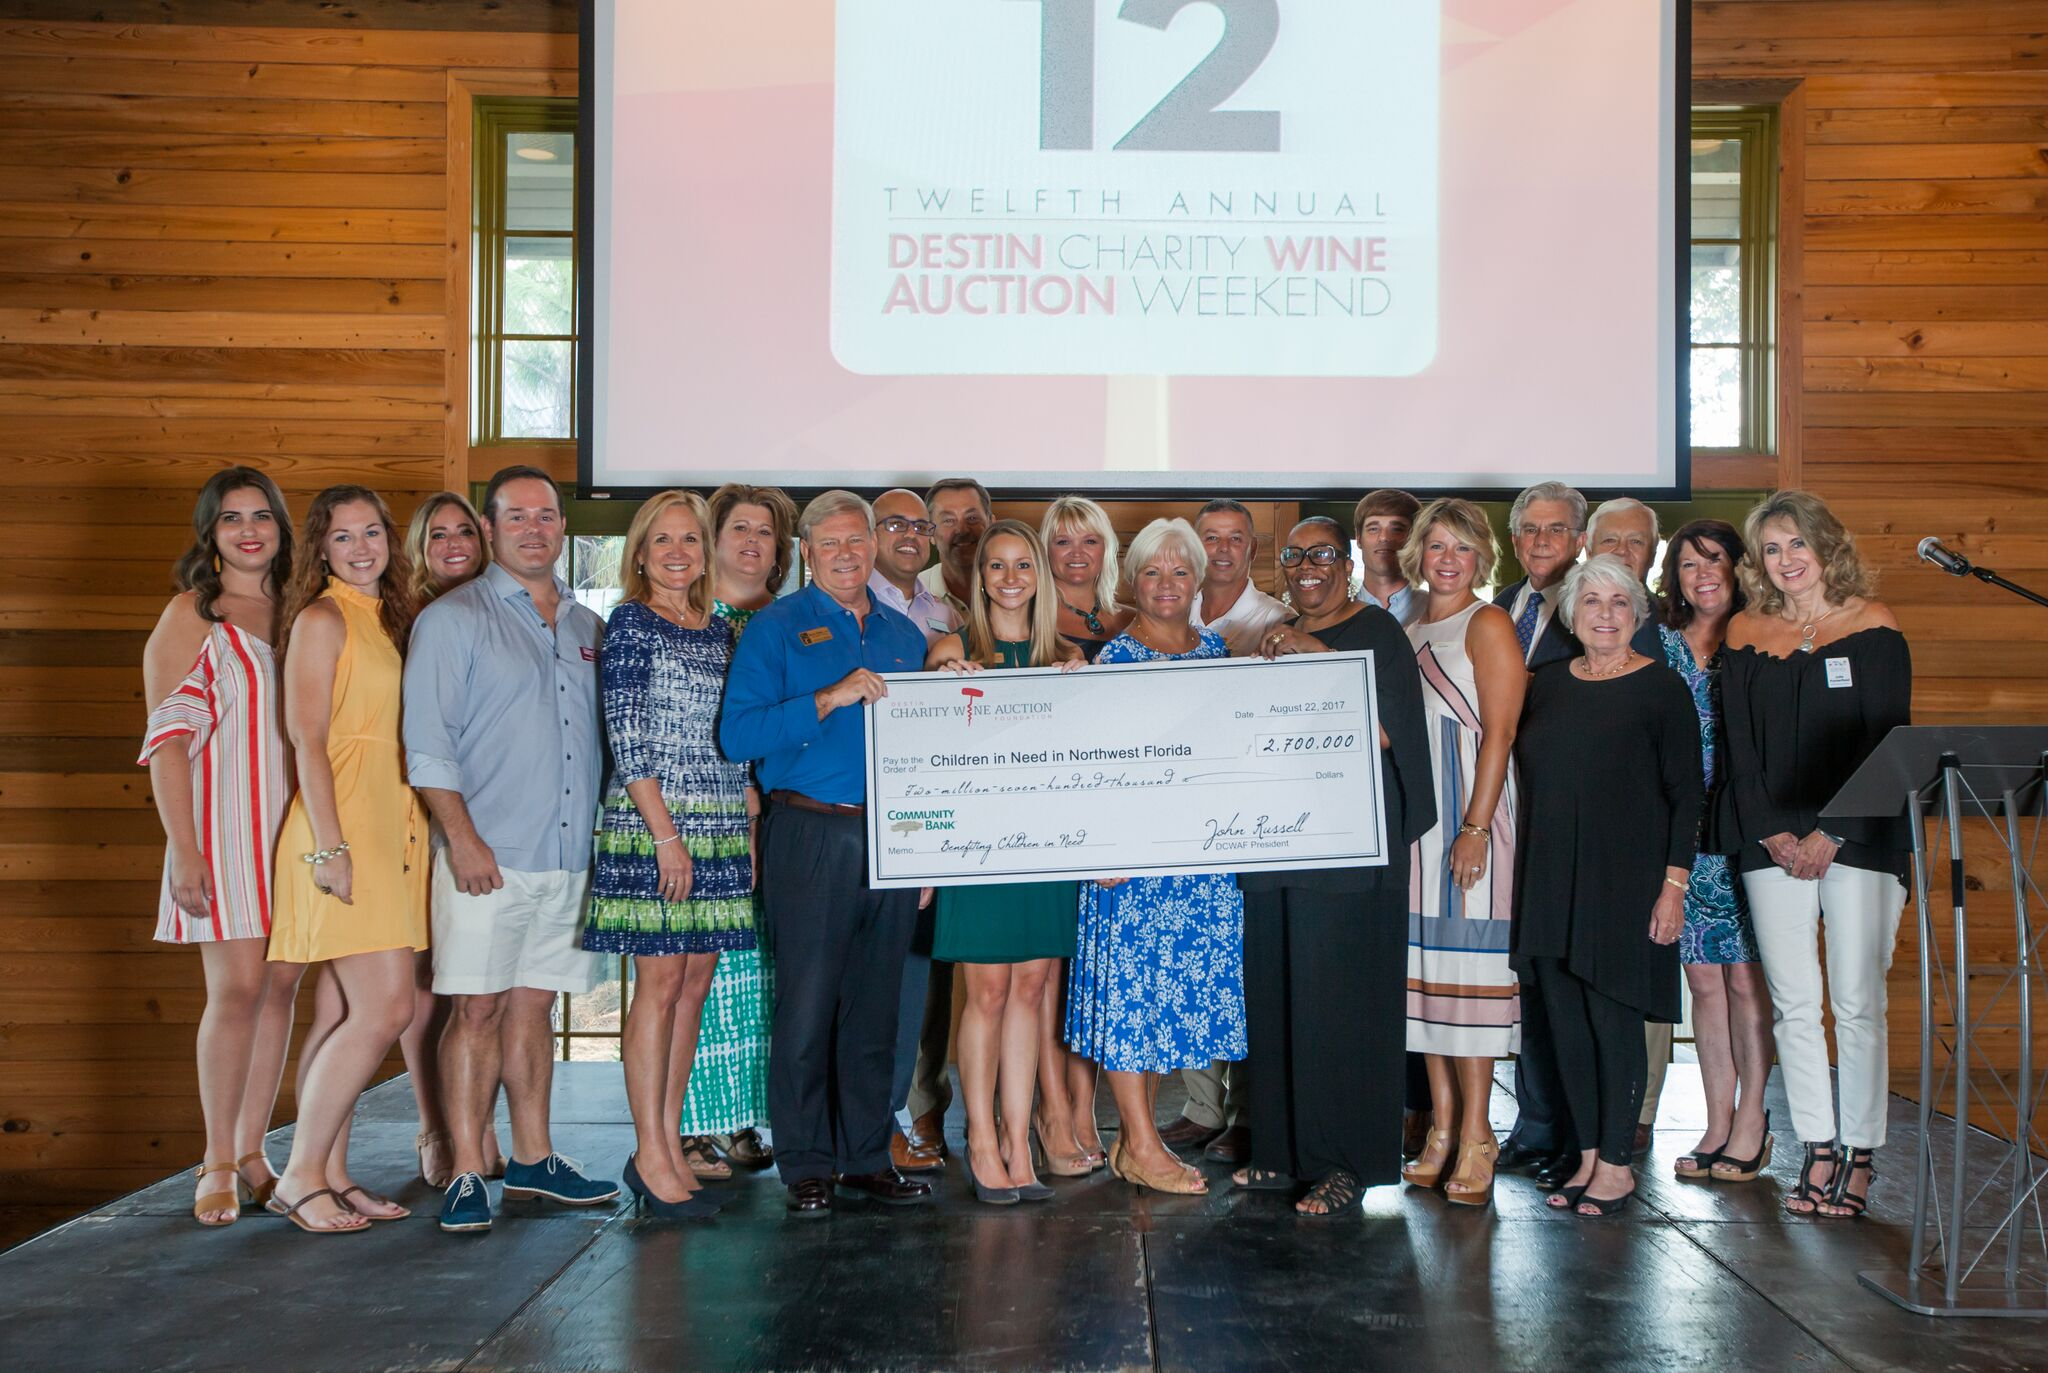 Destin Charity Wine Auction Foundation Donates a Record Breaking $2.7 Million